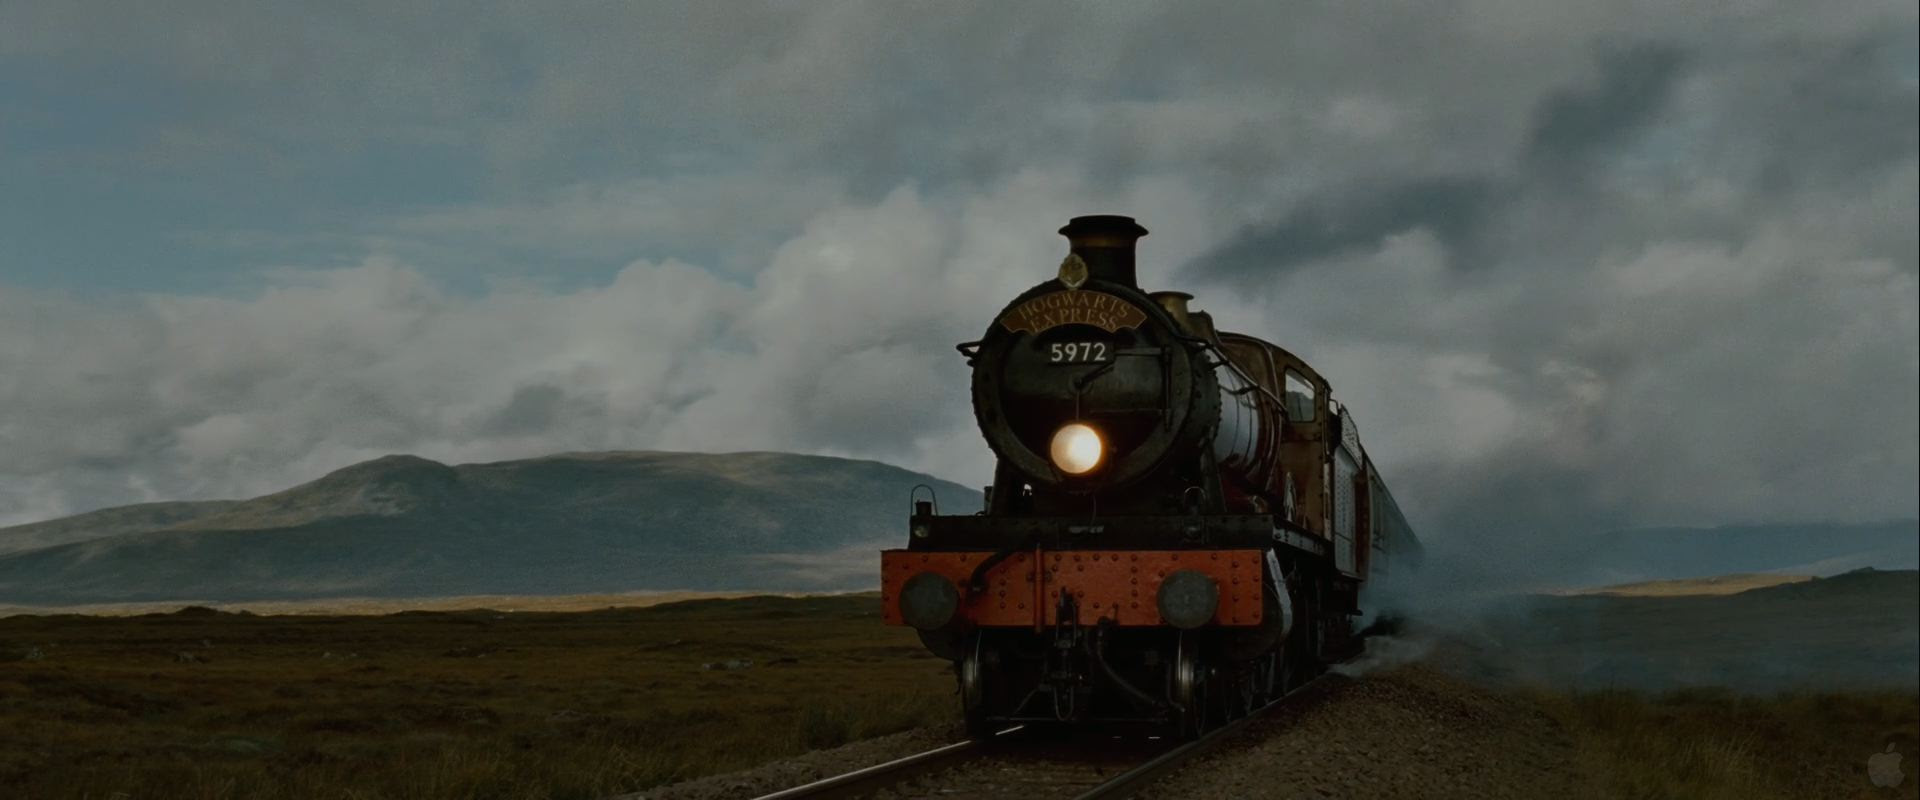 Hogwarts Express Train From Harry Potter And The Deathly Hallows